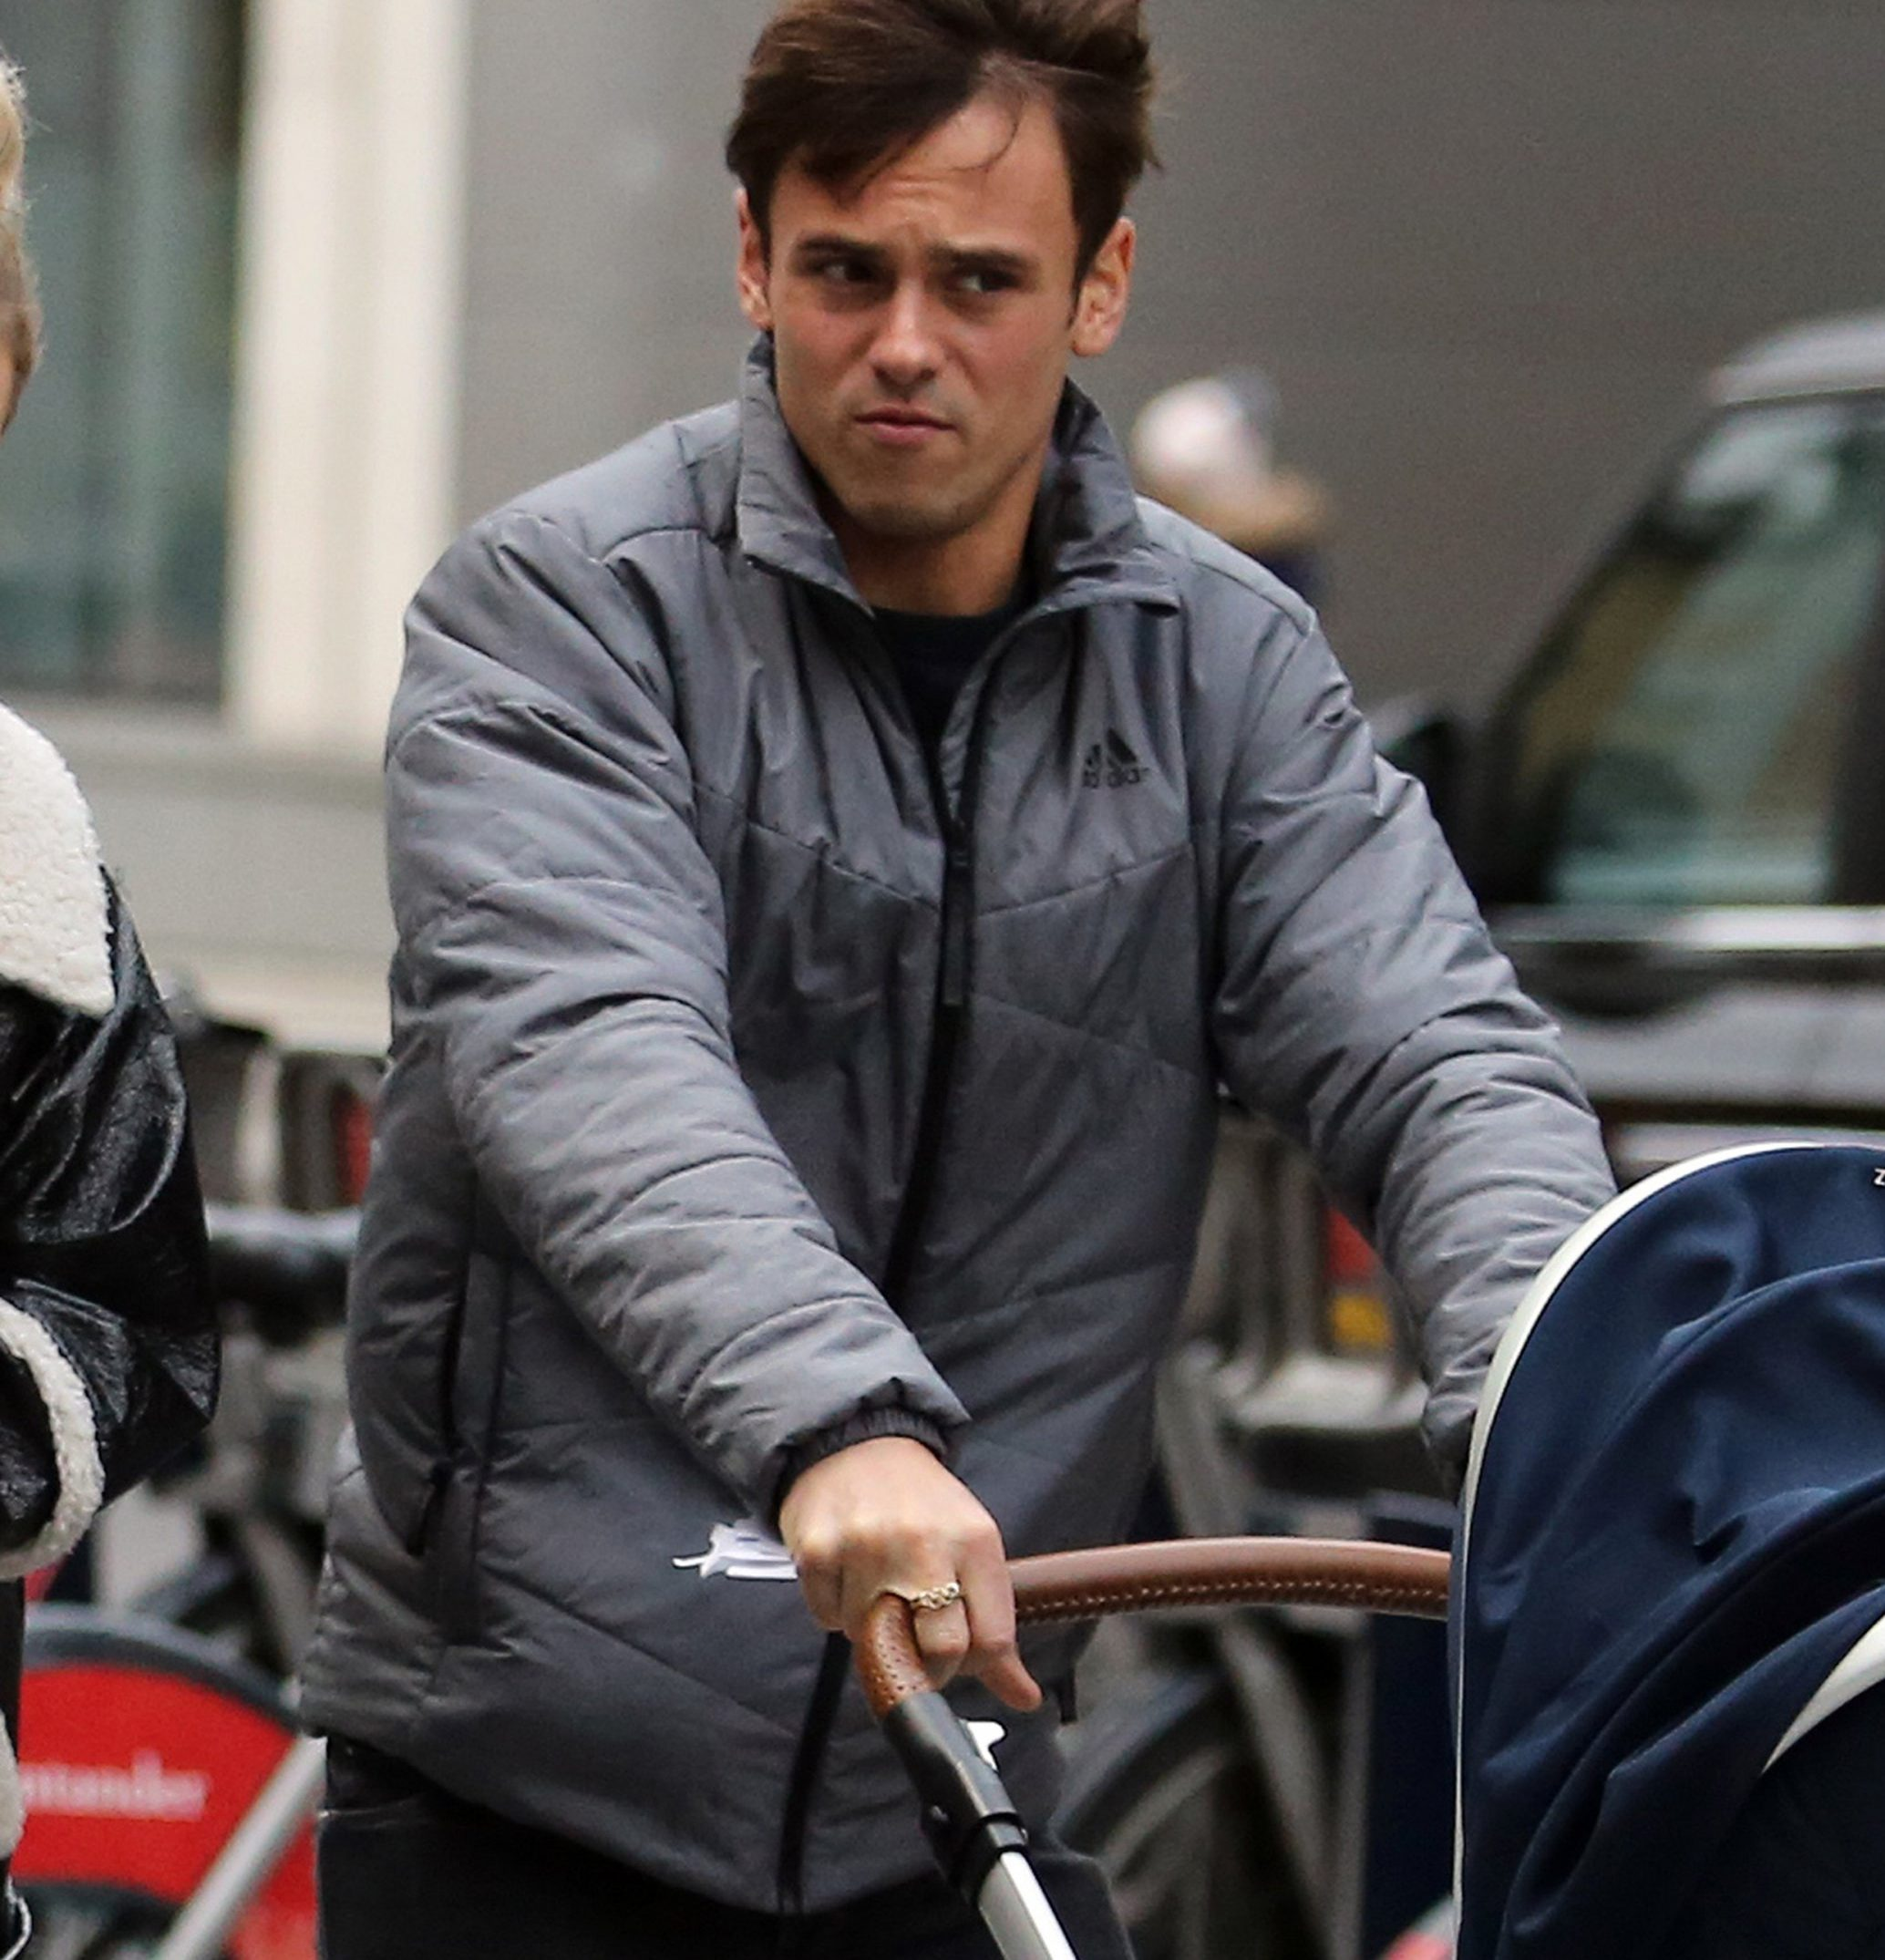 EXCLUSIVE: * Online Set Fee 200 GBP * *UK Print Min Fee 150 GBP Per Pic - Double Fees Page 1 * British Athlete Tom Daley spotted pushing his baby Robert Ray around central London at the weekend. The Olympic diver was joined by two friends, and looked every inch the doting Dad as he pushed his son in a ??500 Joolz stroller. Pictured: Tom Daley Ref: SPL5058745 260119 EXCLUSIVE Picture by: SplashNews.com * Online Set Fee 200 GBP * *UK Print Min Fee 150 GBP Per Pic - Double Fees Page 1 * Splash News and Pictures Los Angeles: 310-821-2666 New York: 212-619-2666 London: 0207 644 7656 Milan: 02 4399 8577 photodesk@splashnews.com World Rights